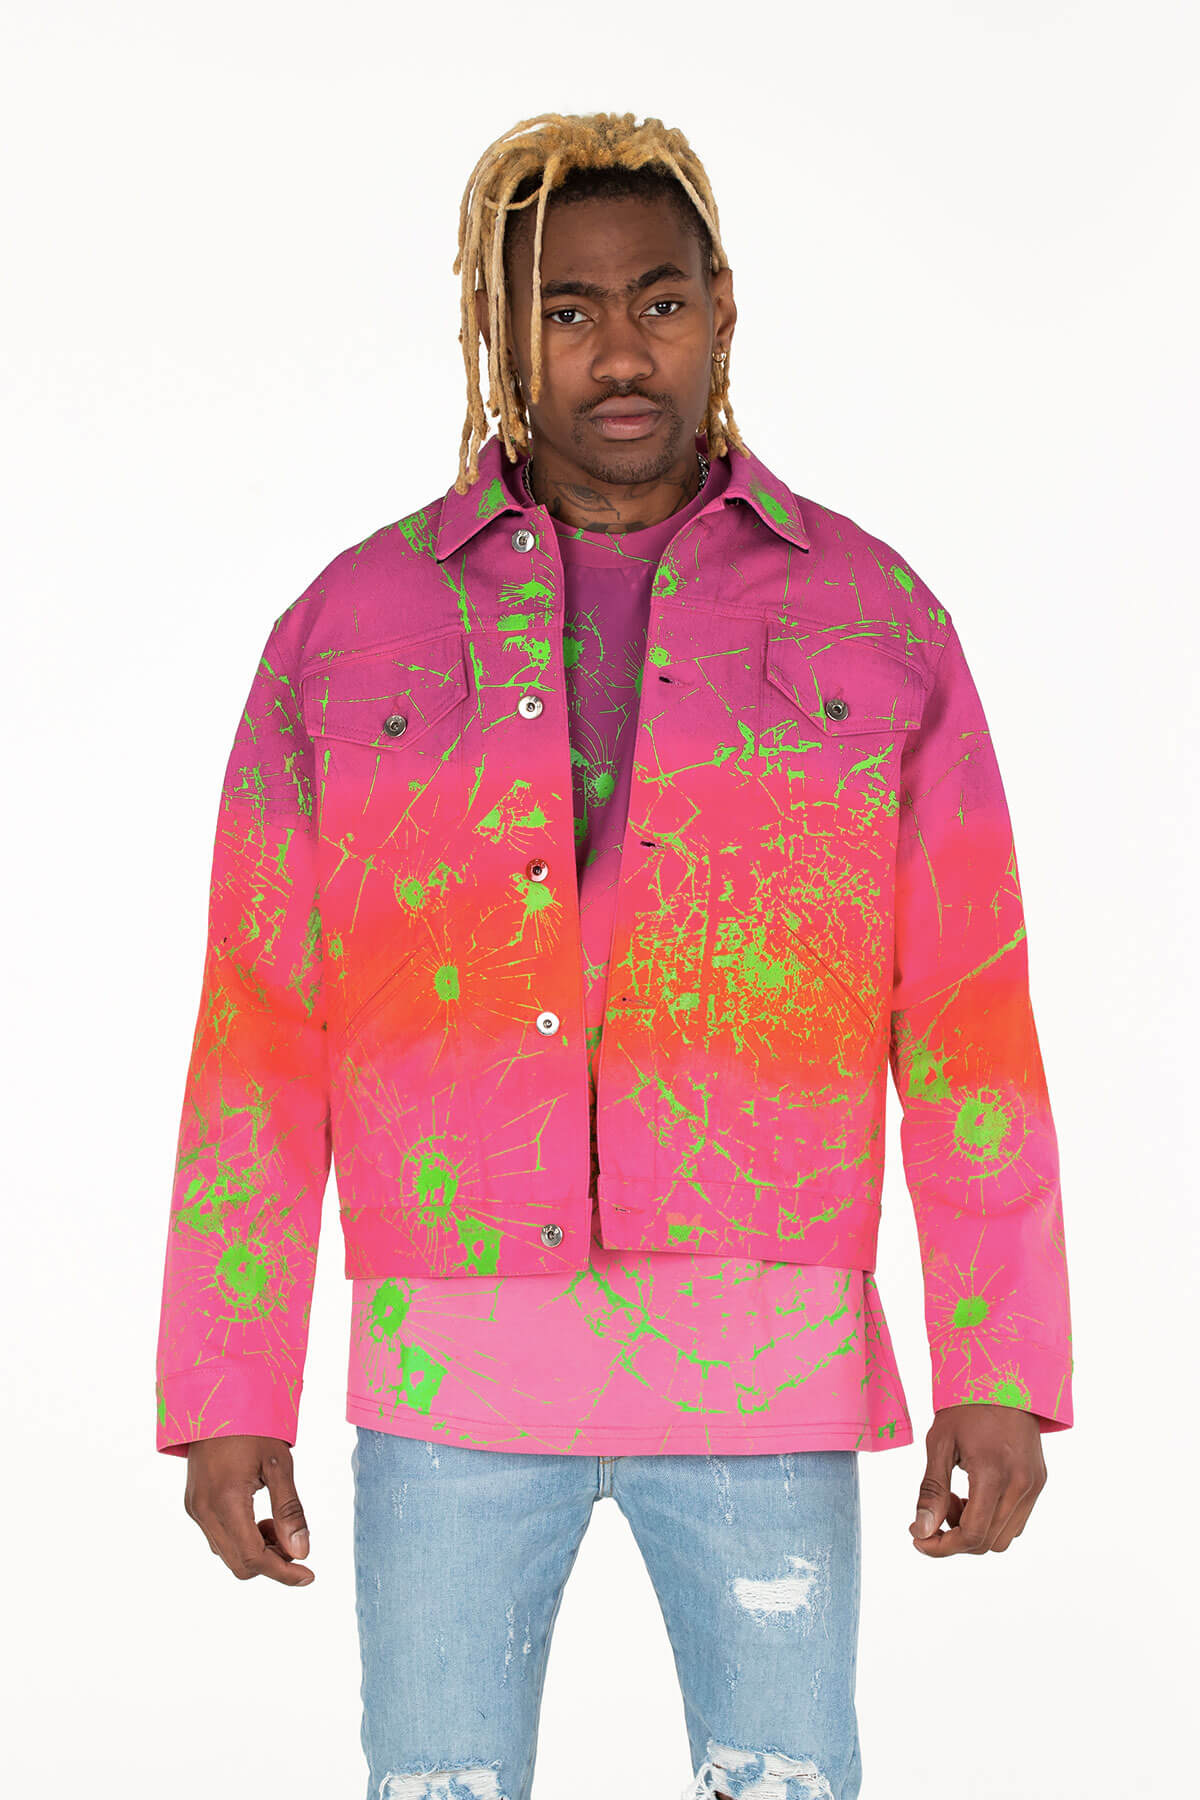 MULTI OMBRE PAX DENIM JACKET HAND CRAFTED - MJB